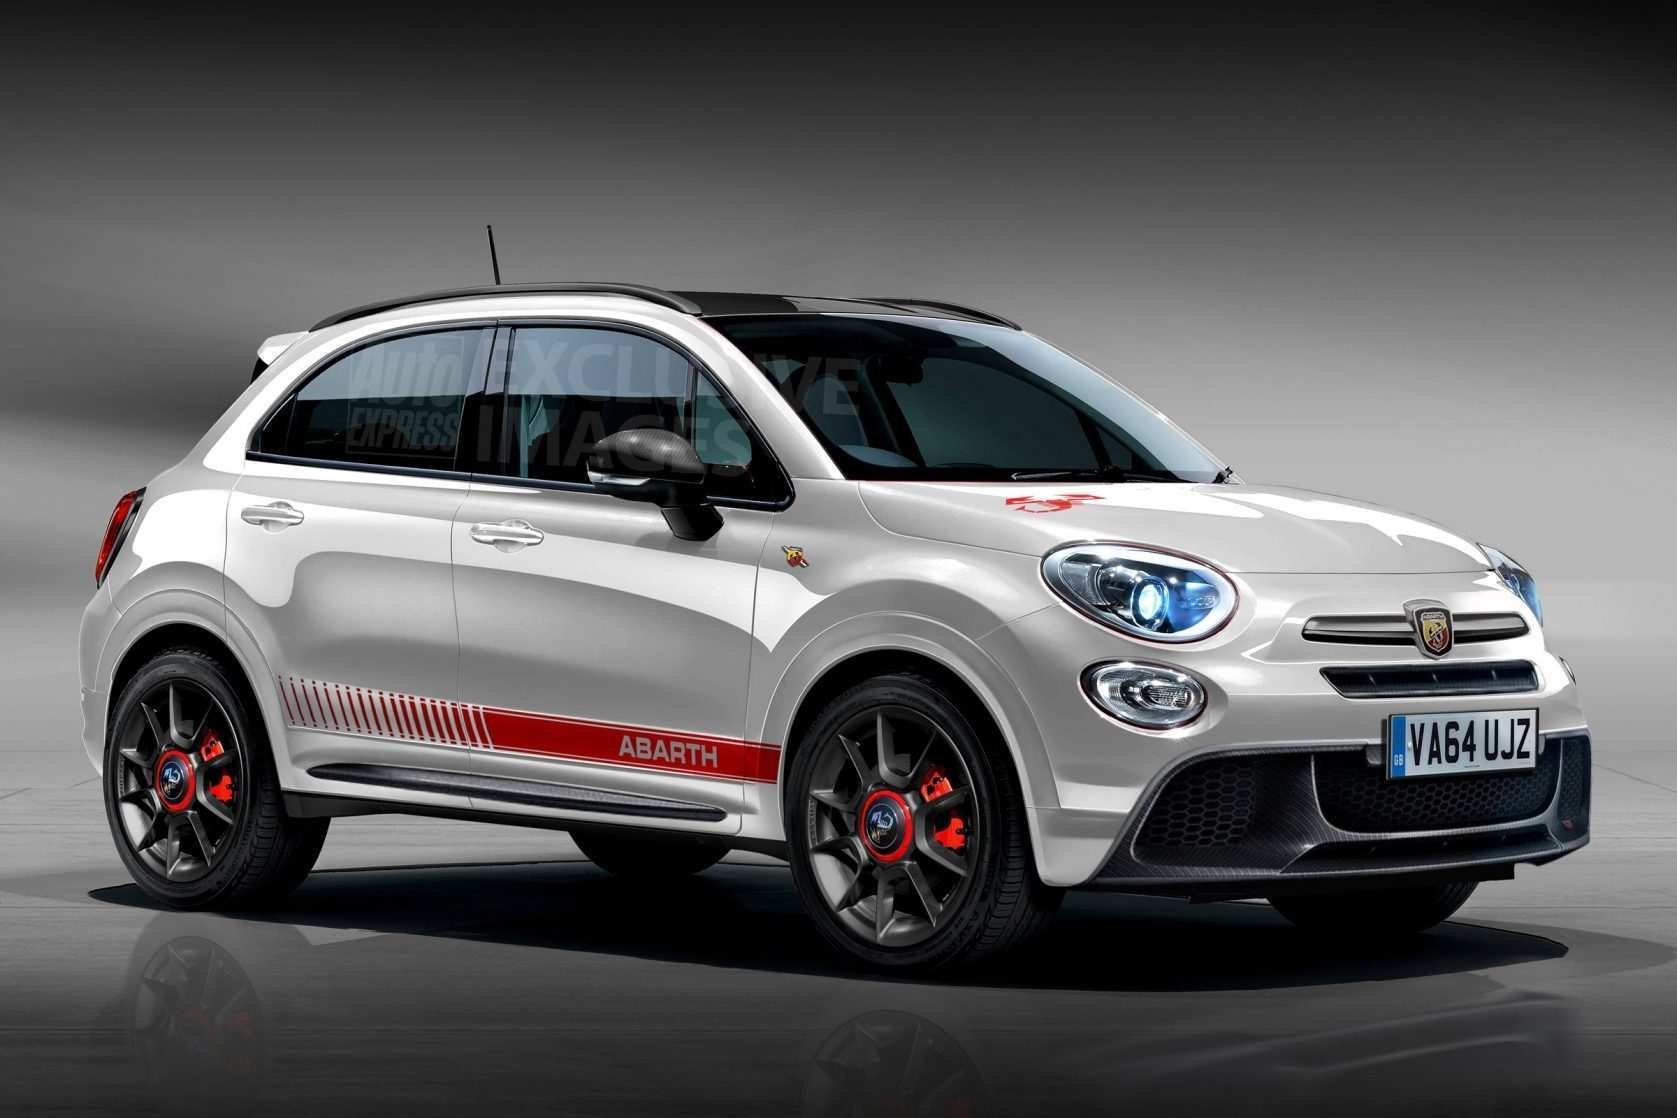 93 All New 2019 Fiat Price History with 2019 Fiat Price